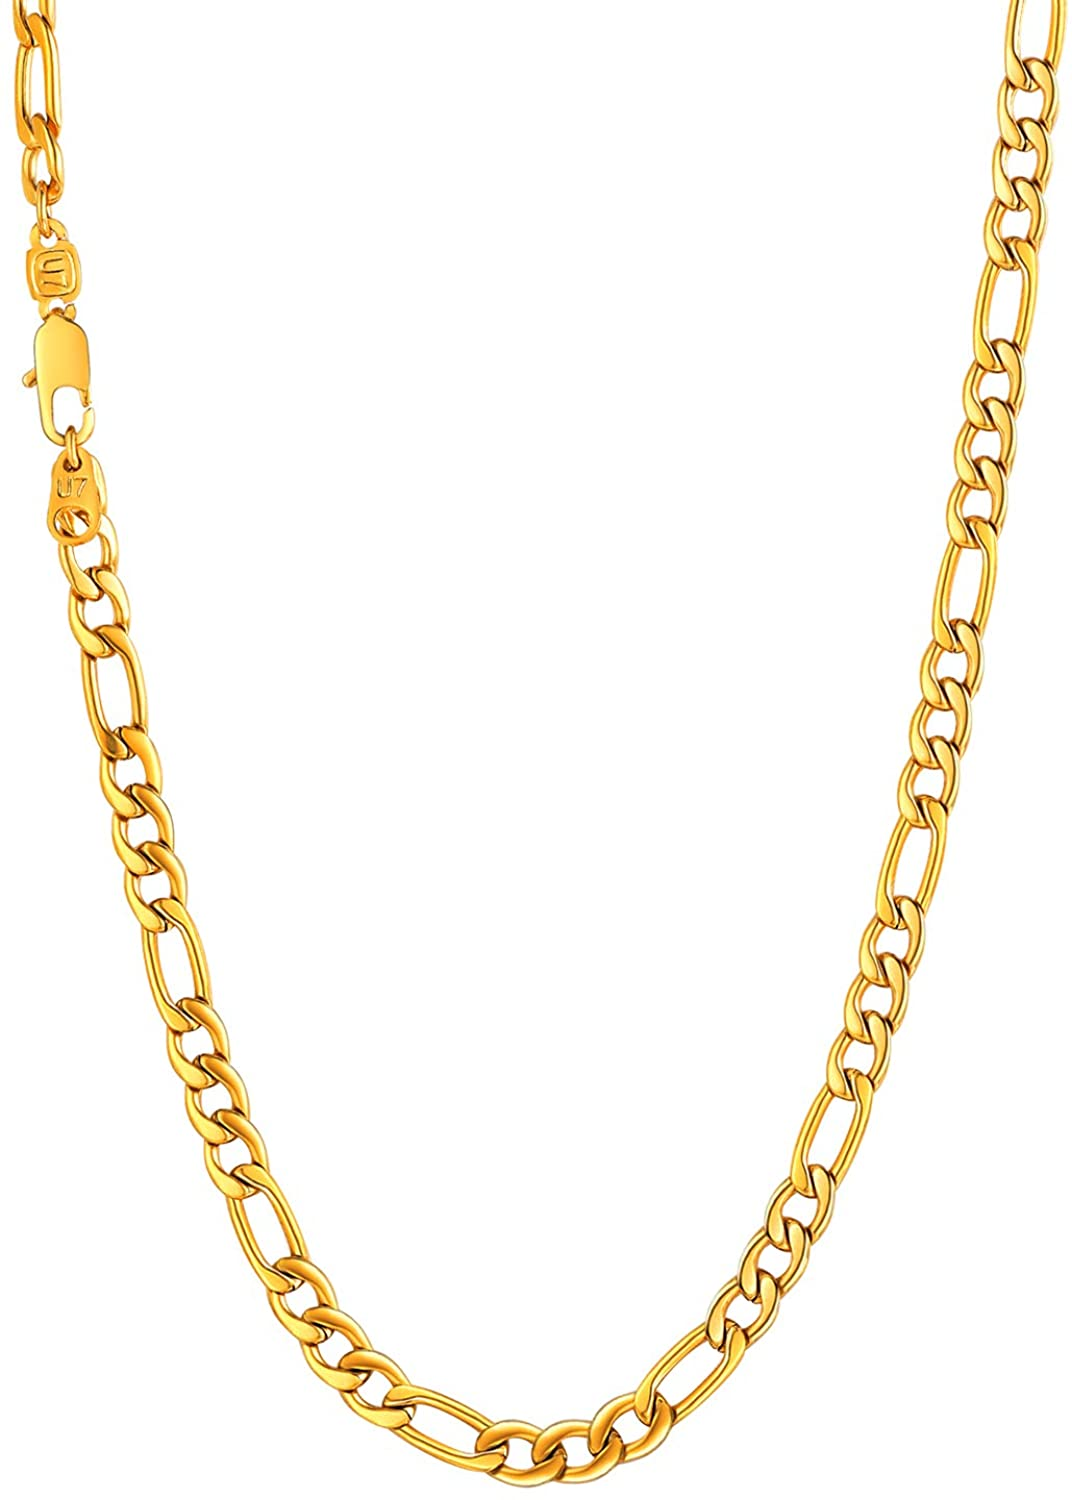 U7 Stainless Steel Figaro Chain|Width 3mm-12mm|Length 16 Inch to 32 Inch|Italian Style Flat Link Necklace for Men and Women, Gift Box Packed